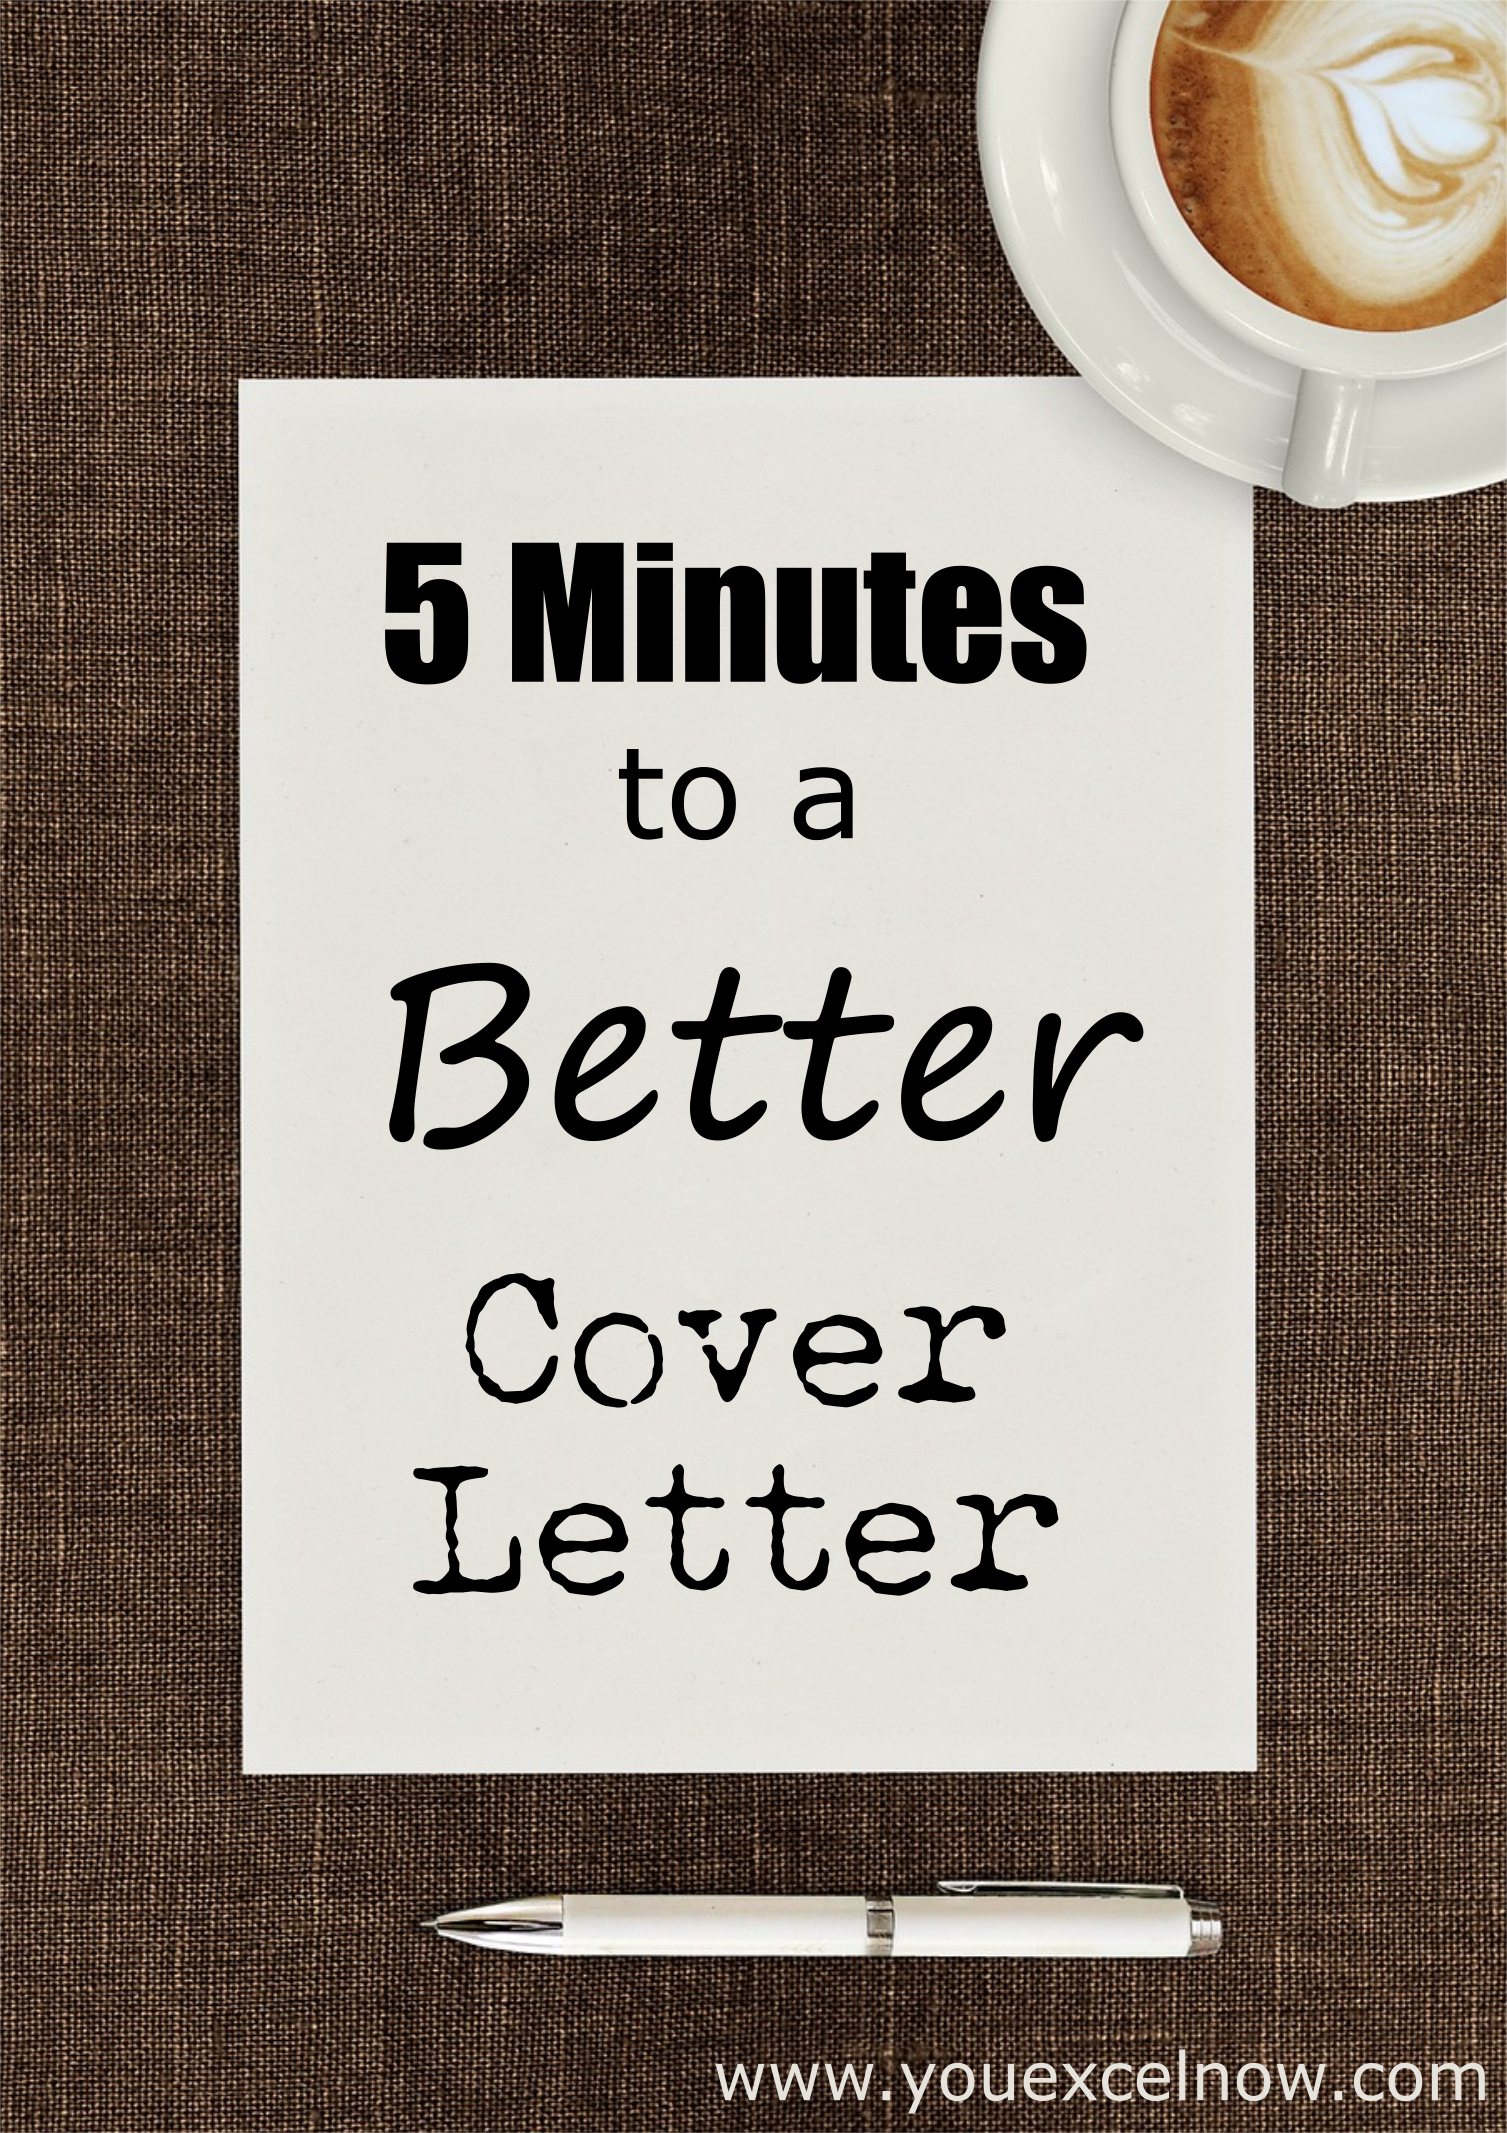 5 Minutes to a Better Cover Letter2